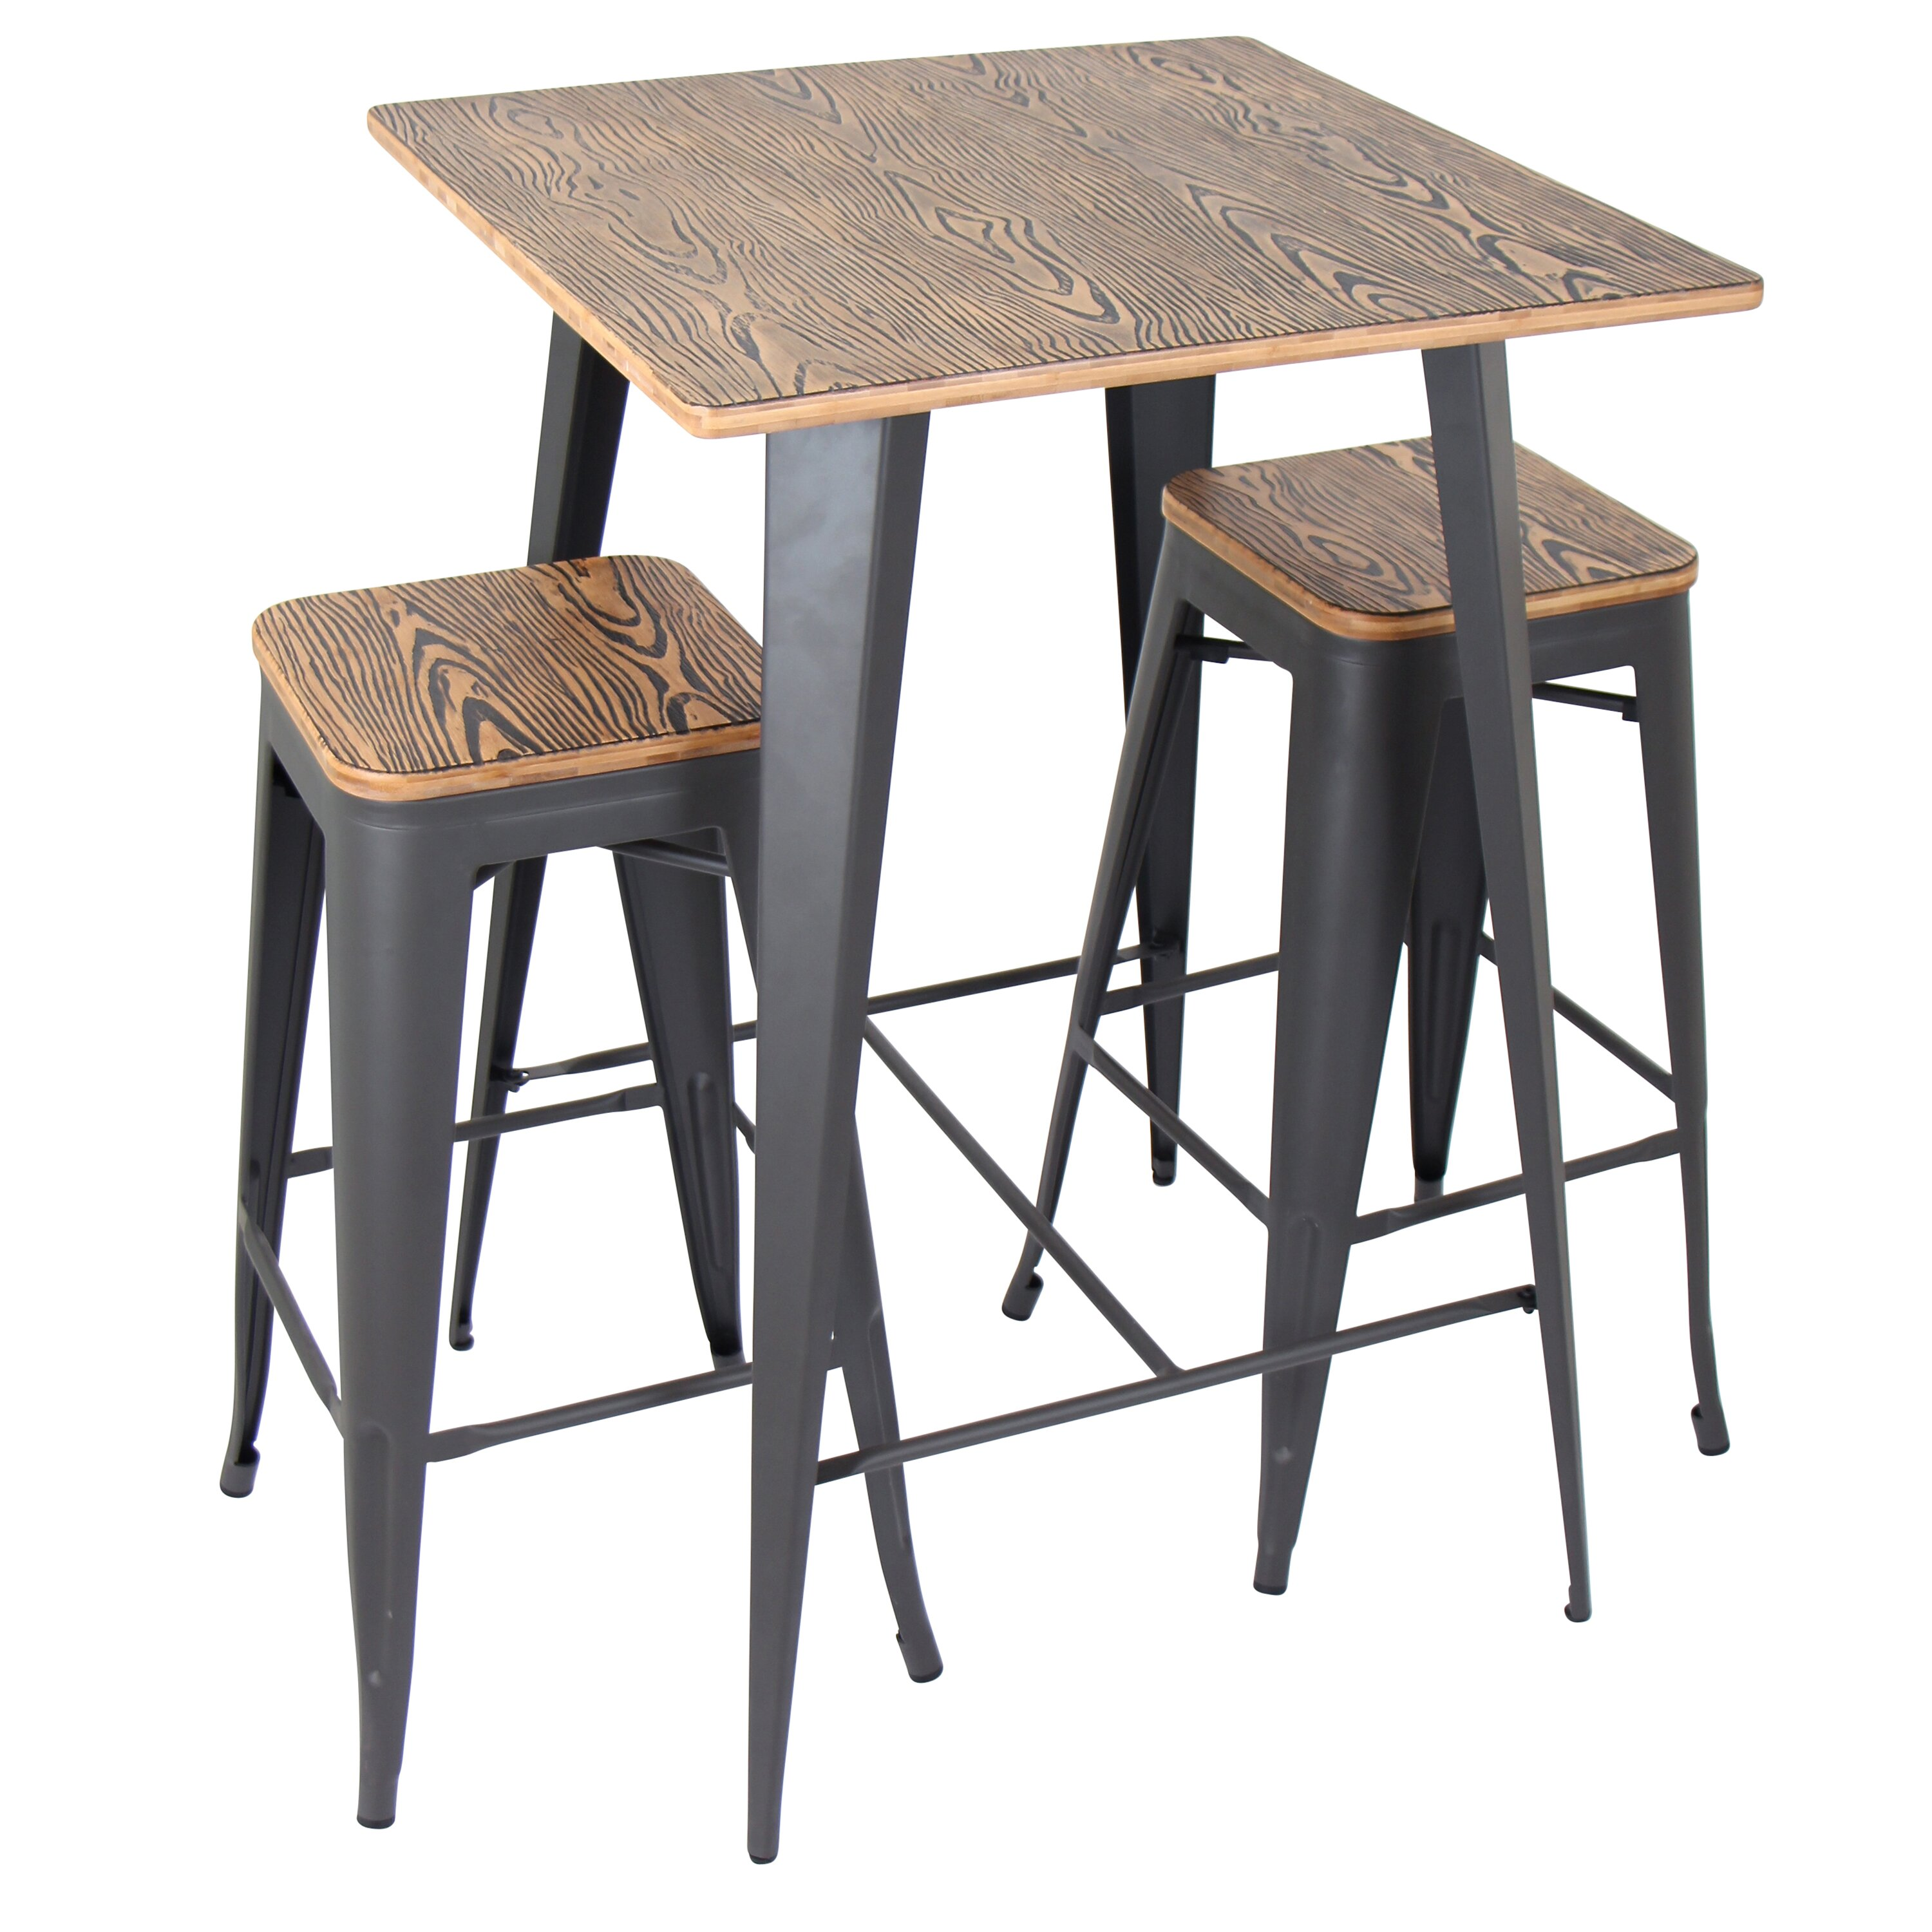 Bar Table And Chairs Set Pub Table Set Gettysburg Pub Table Set The Most Bar Table Sets